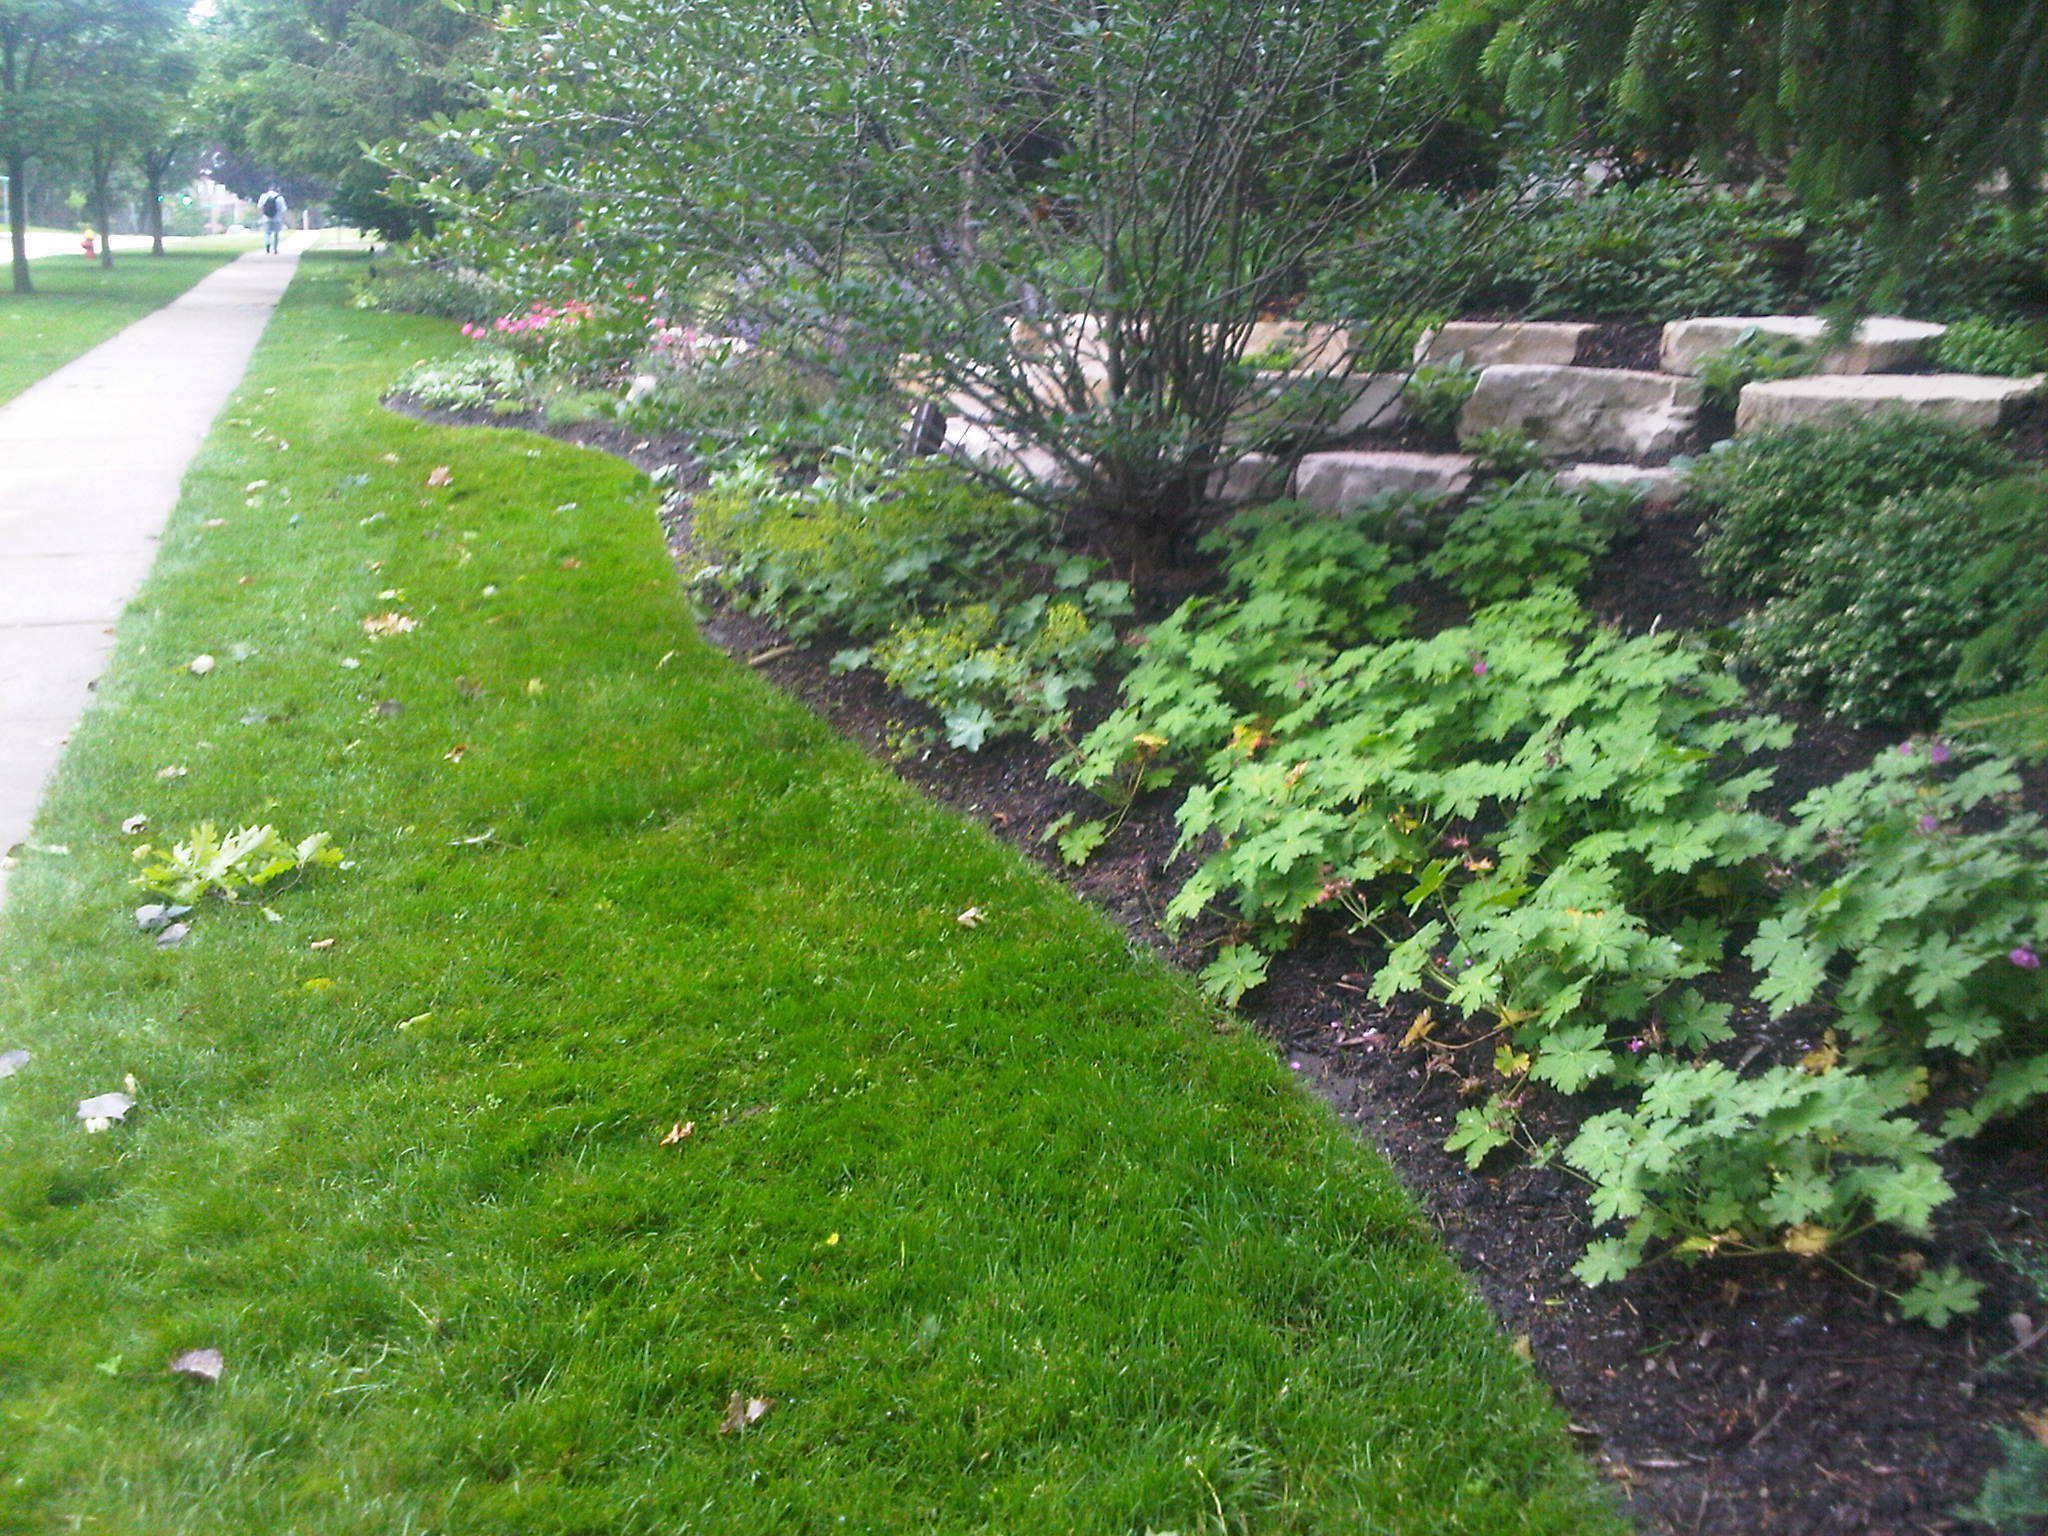 4 Tips To Keep in Mind When Looking for a Lawn Service Provider in the Highland Park, IL, Area